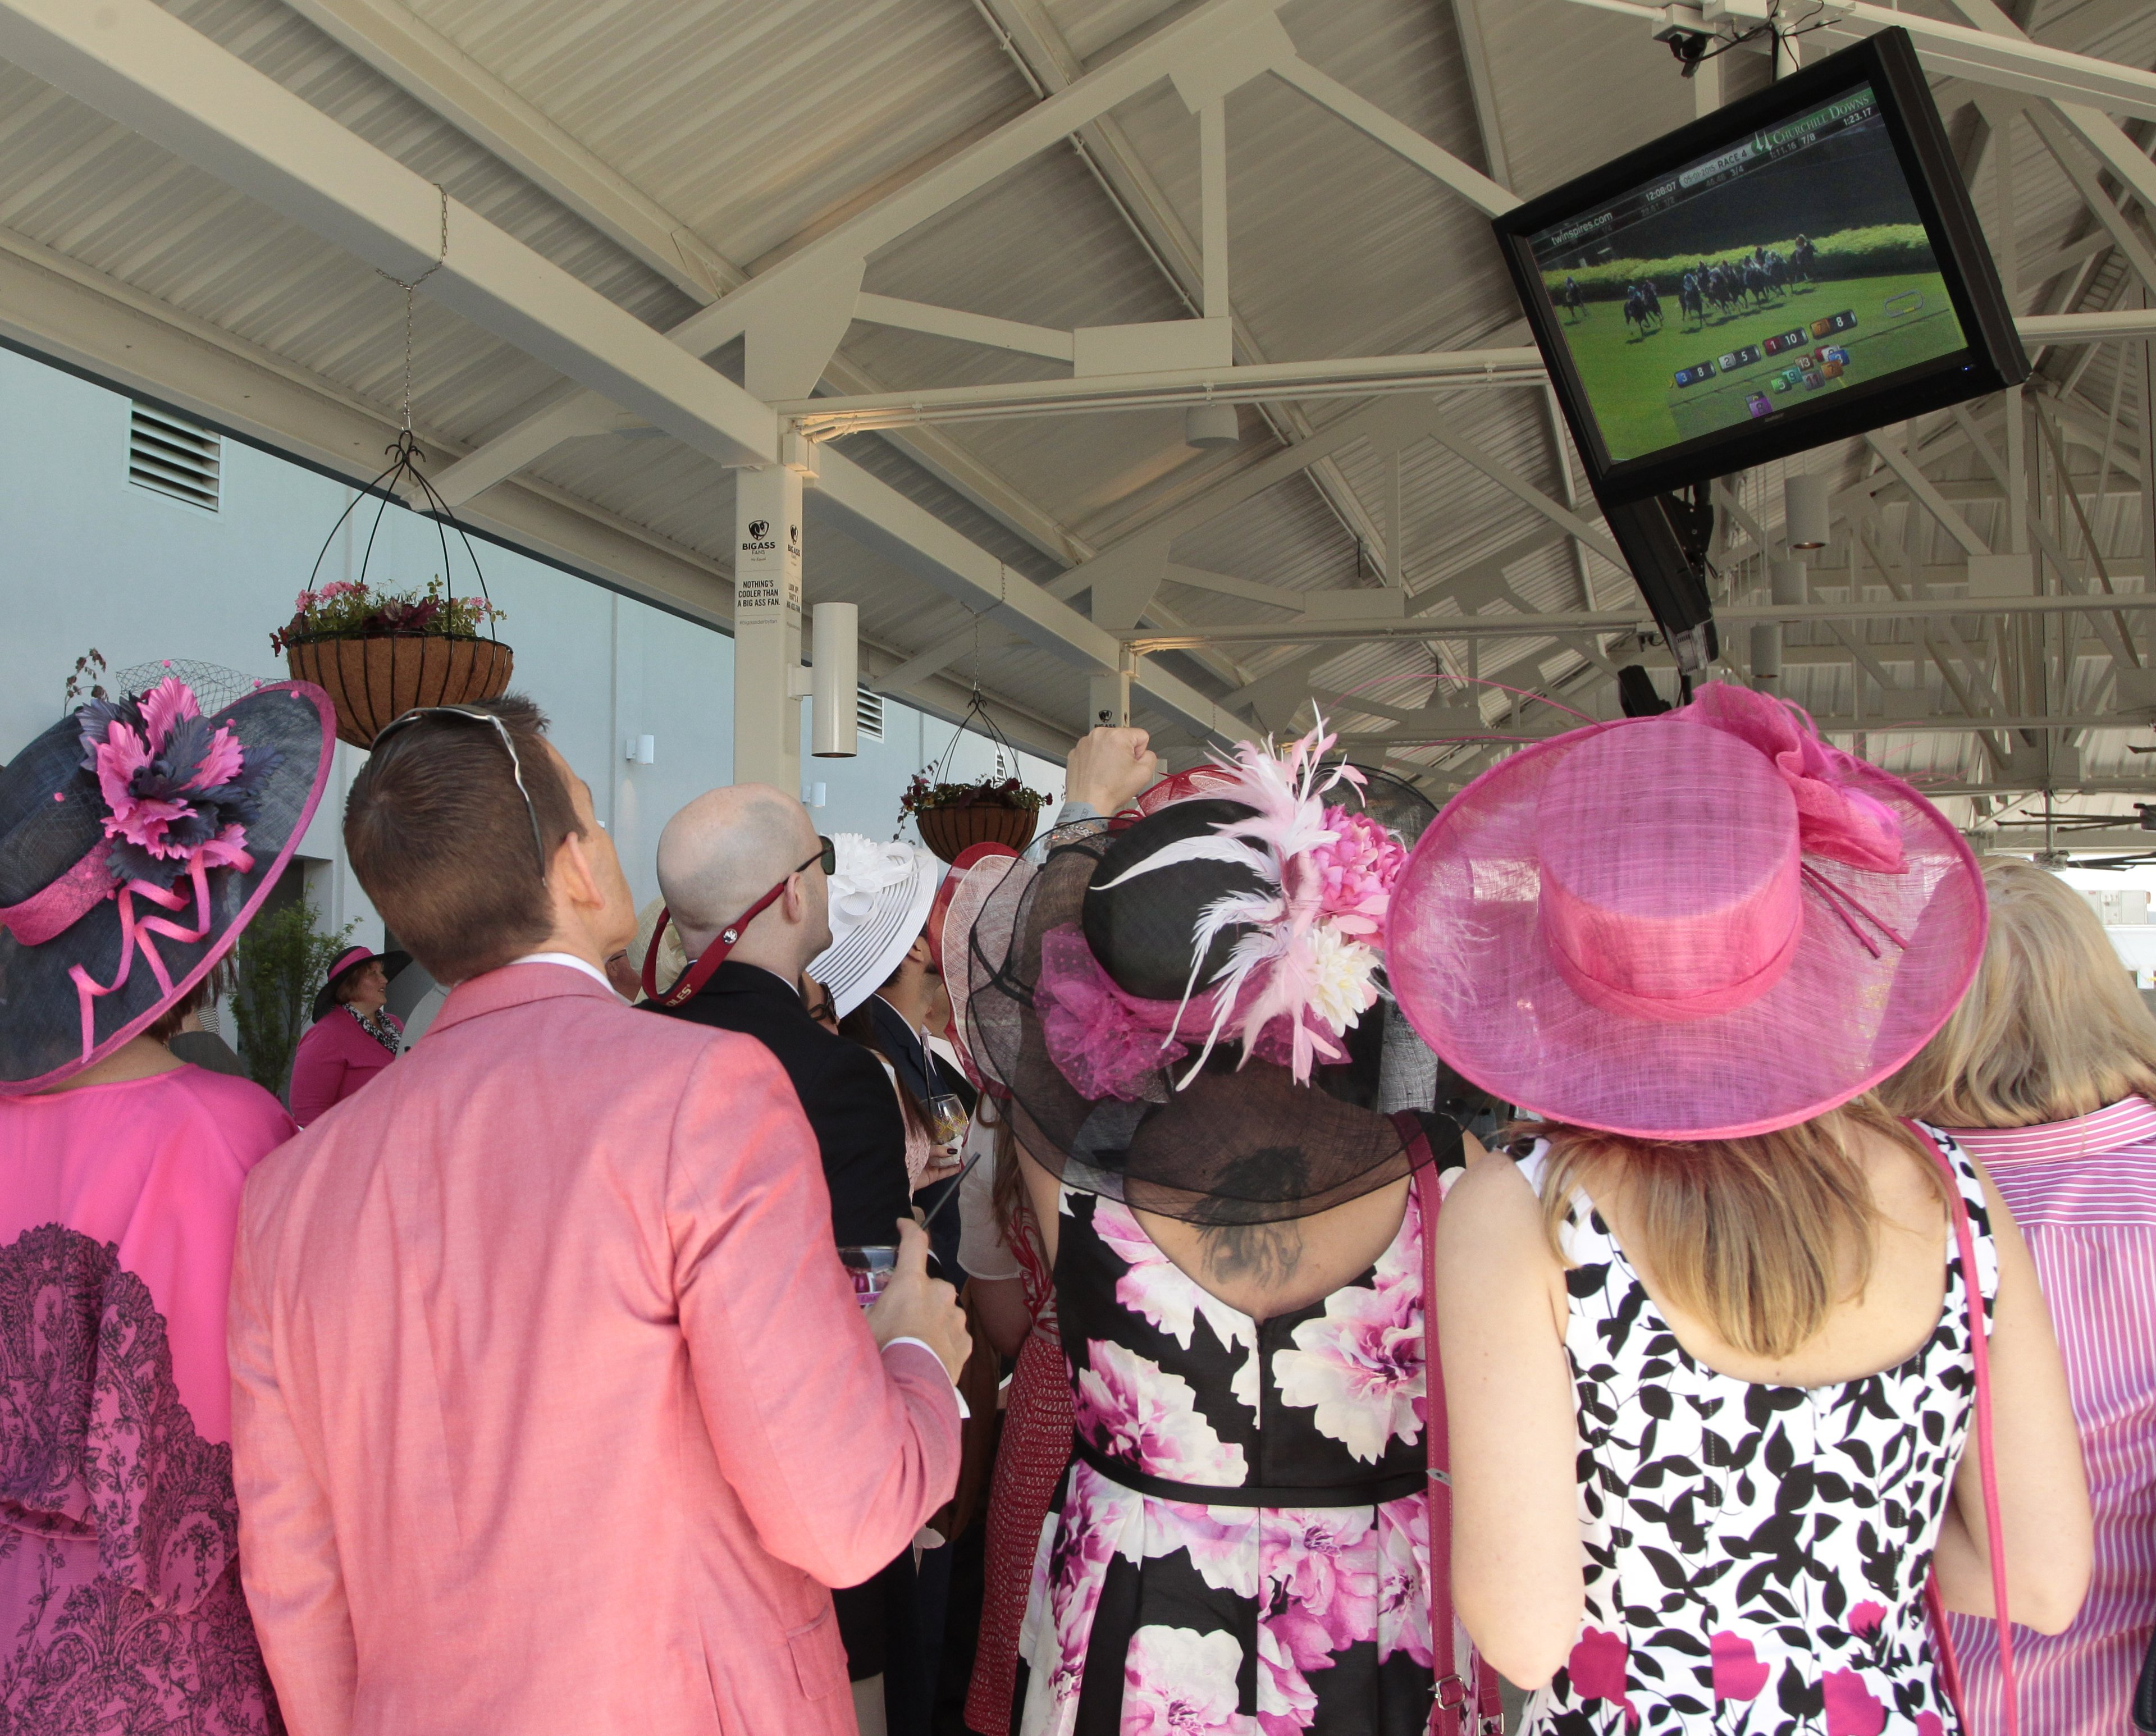 Churchill Downs Grand Stands with fans viewing race